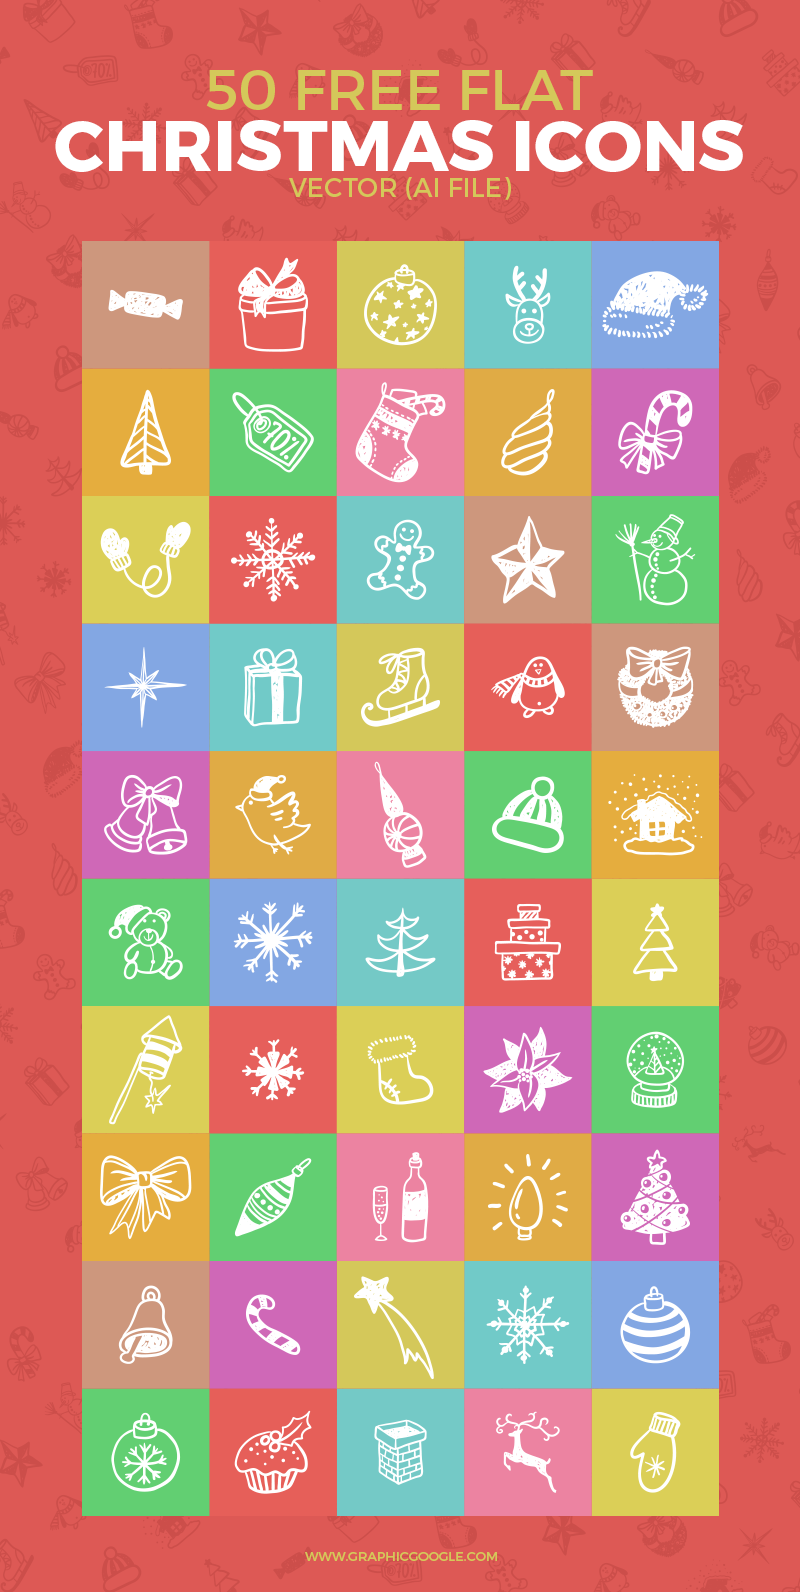 50-free-flat-christmas-icons-vector-ai-file